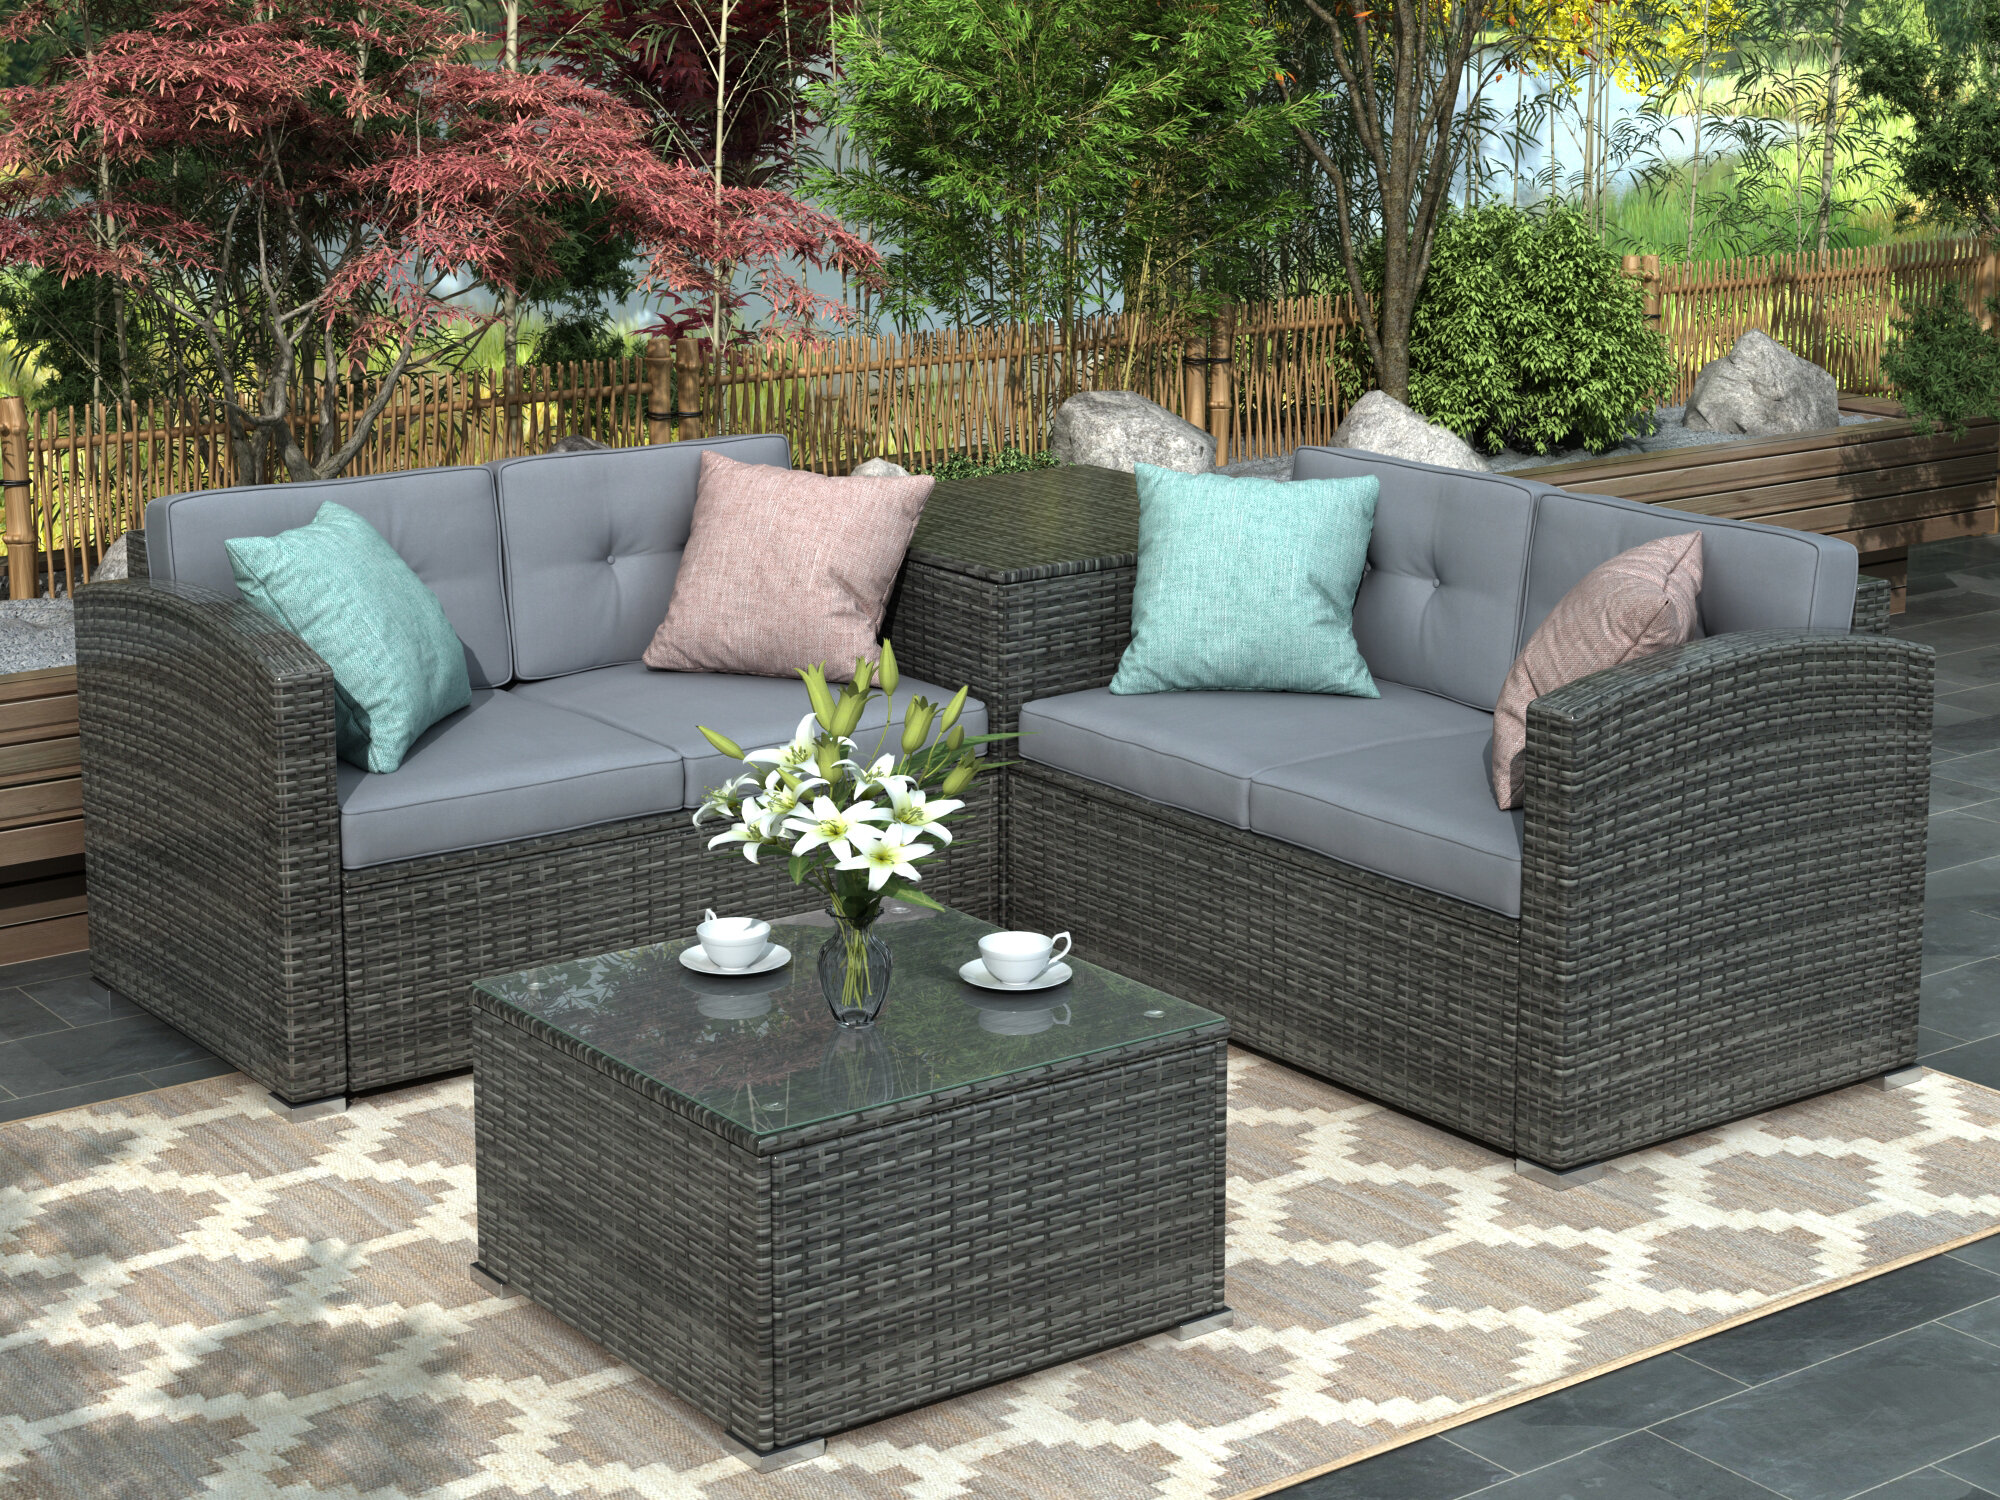 11 Pcs Outdoor Cushioned Pe Rattan Wicker Sectional Sofa Set Garden Patio  Furniture Set (grey Cushion)